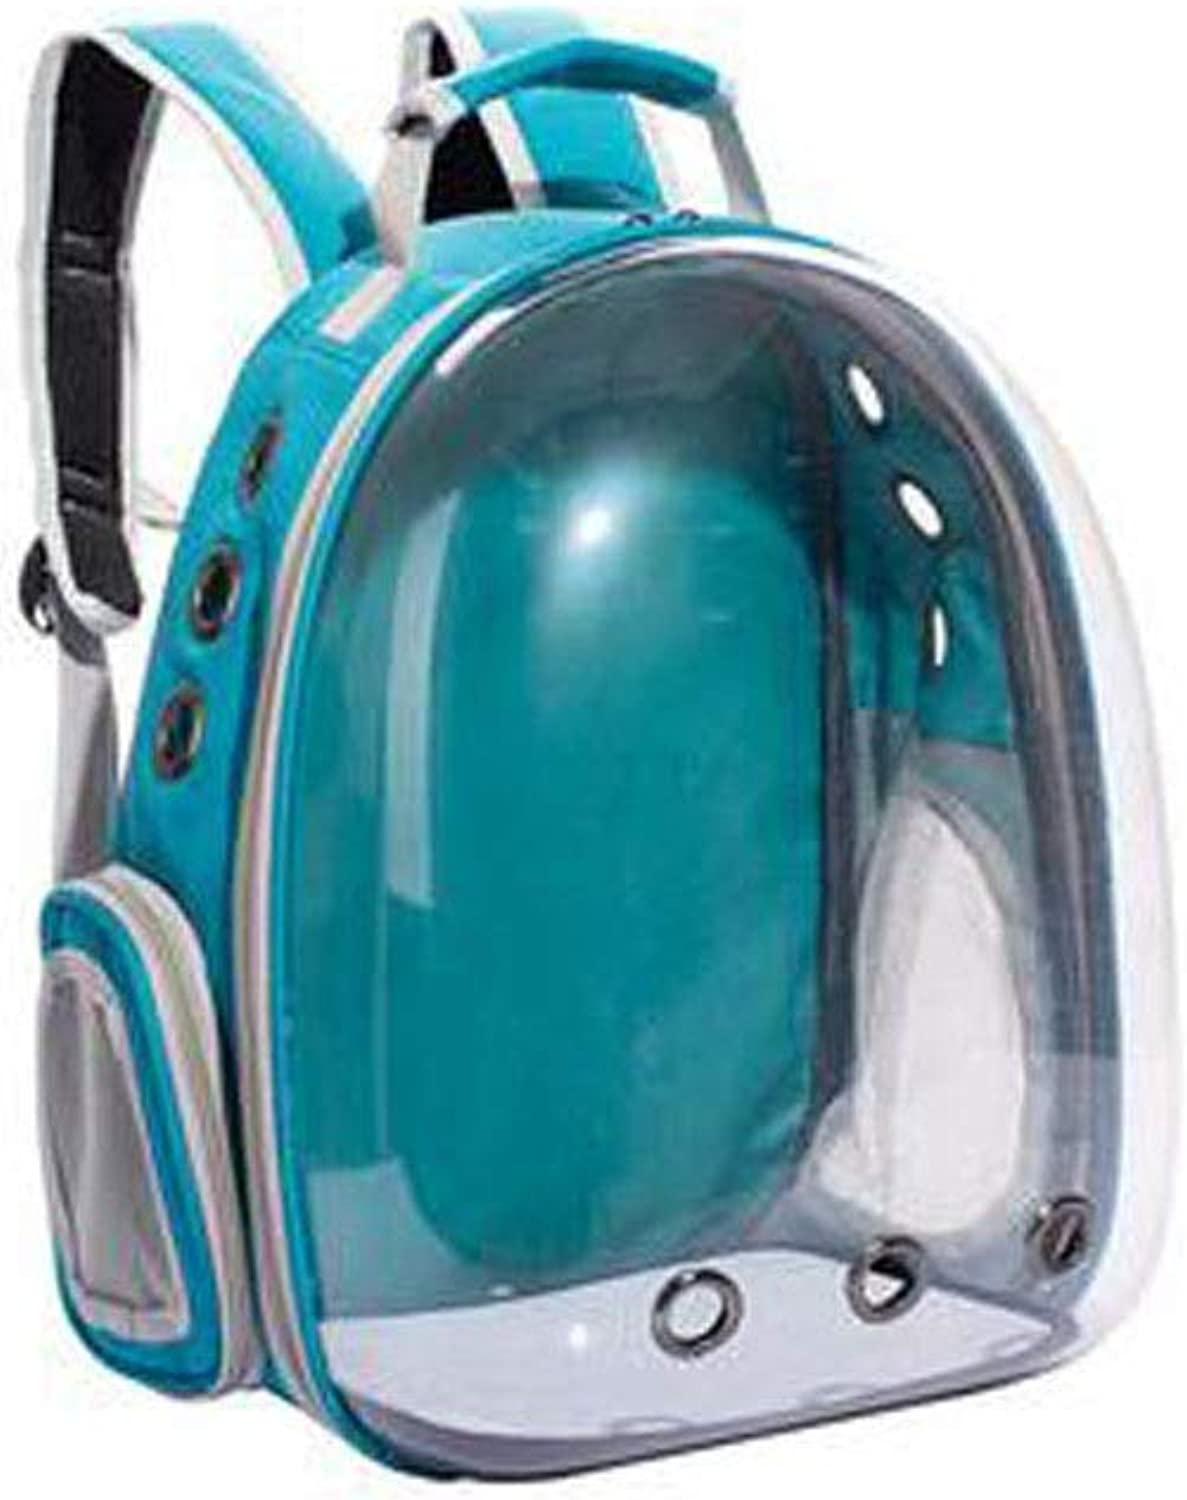 Guyuexuan Fully Transparent Pet Backpack, LargeCapacity Space Capsule Bubble Transparent Backpack, Suitable for MediumSized Pets for Travel, Hiking Pet Travel Essentials (color   bluee2)